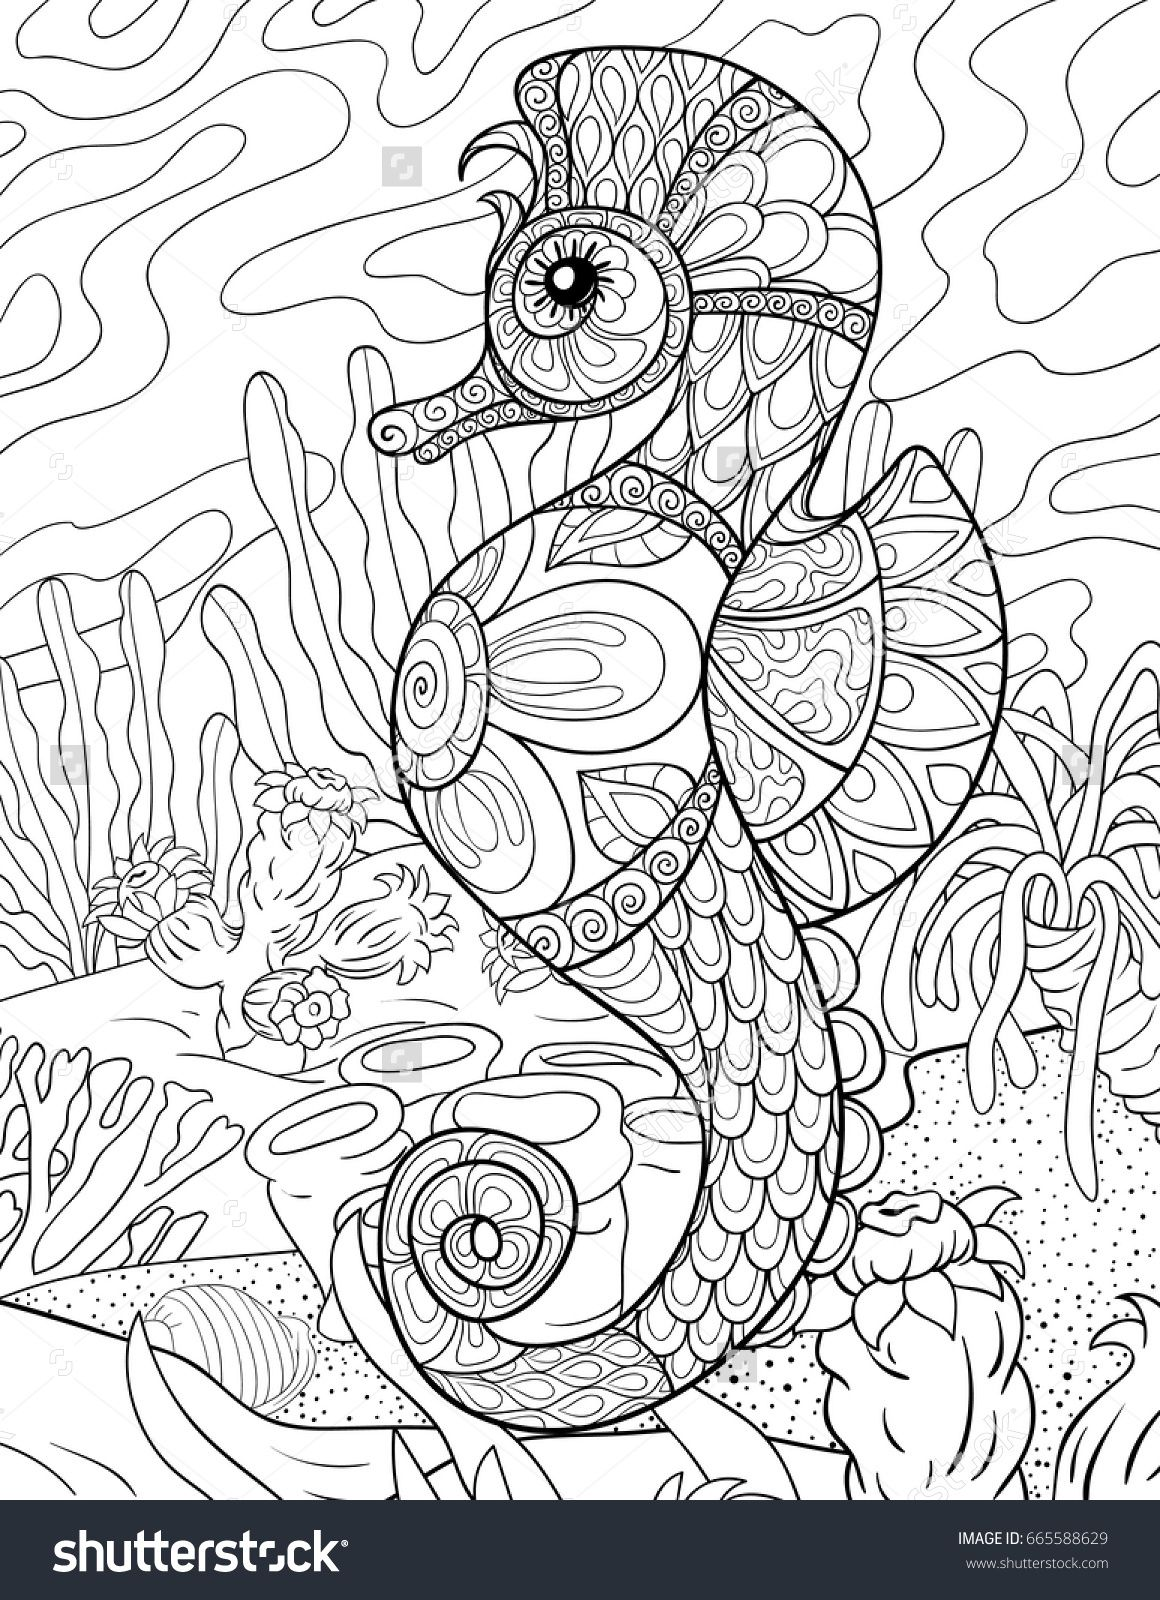 Adult Coloring Page,book A Seahorse With Background Zen Art Style